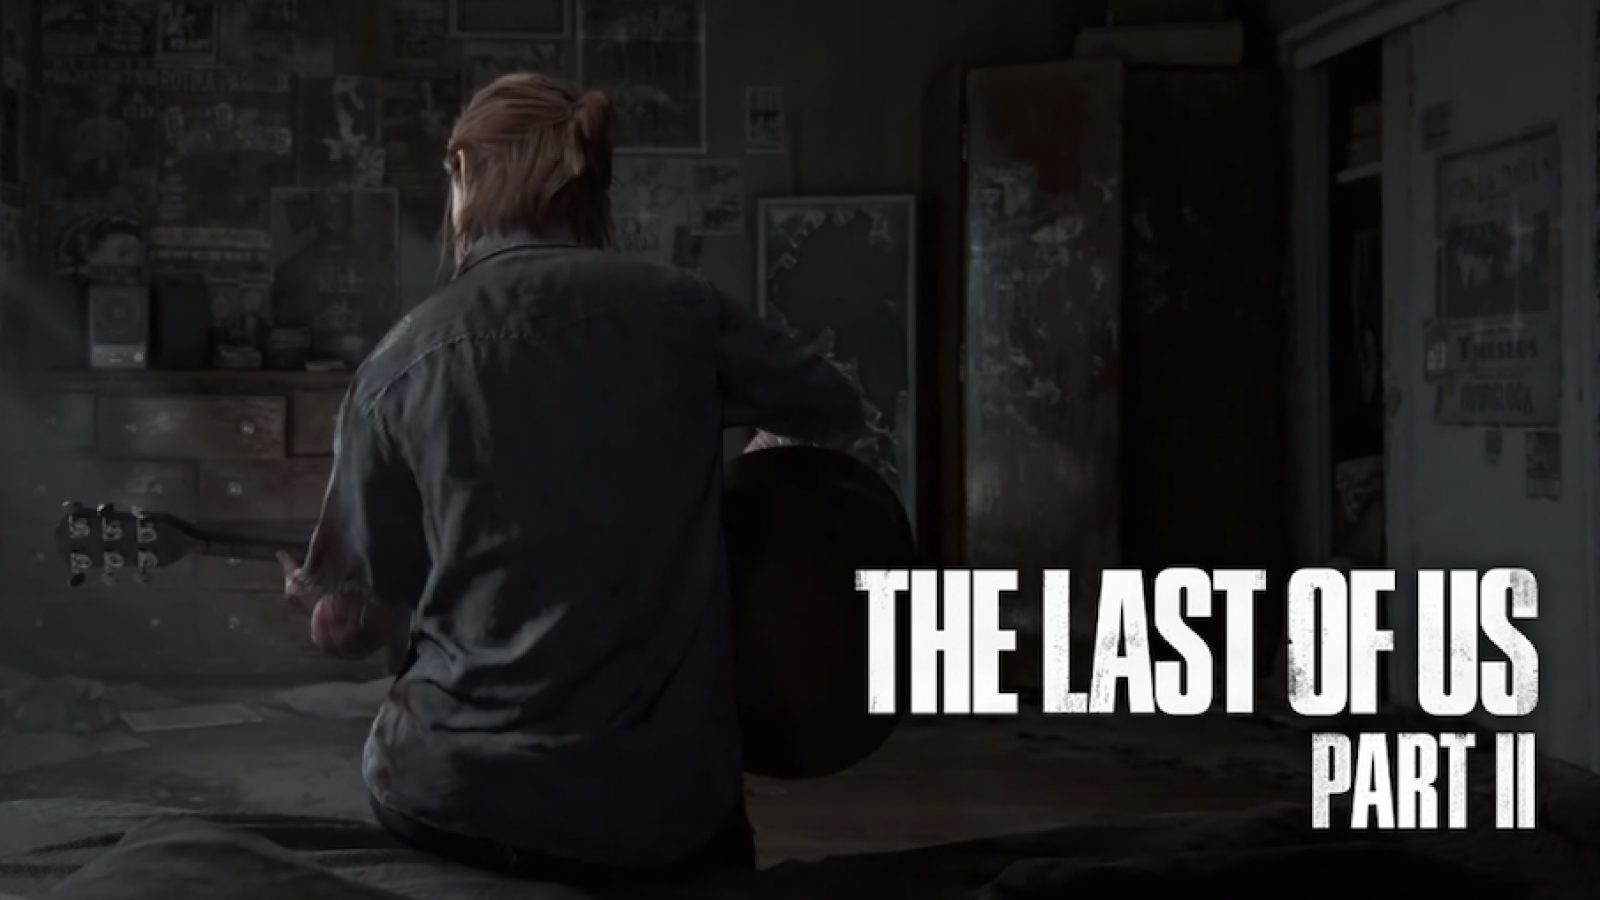 Last of us part 2 update